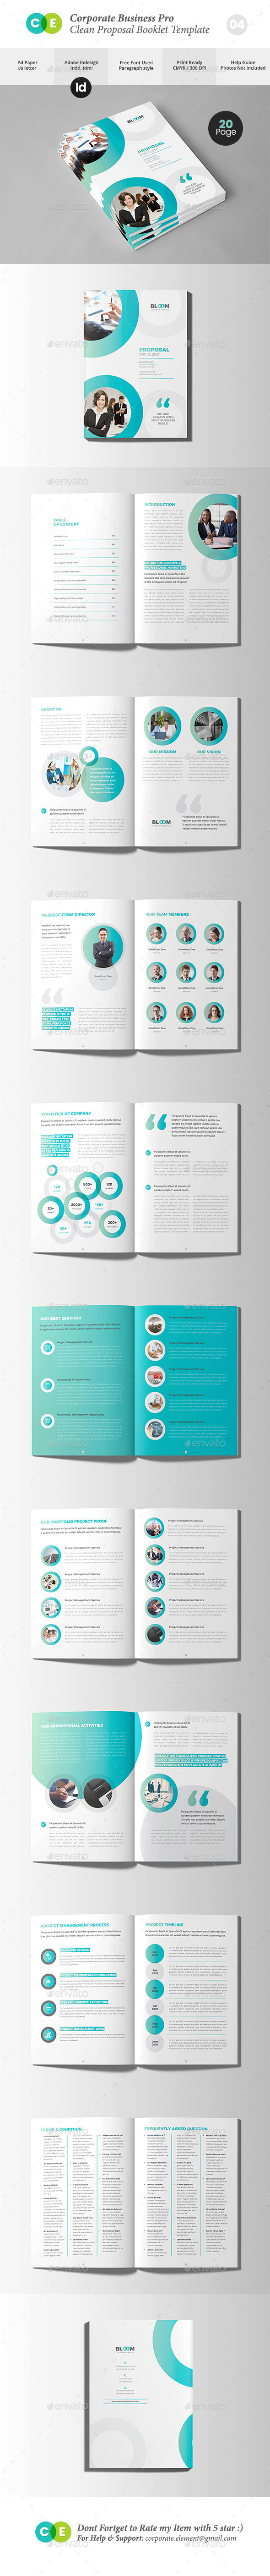 Creative Business Agency Proposal Document V04 - Proposals & Invoices Stationery